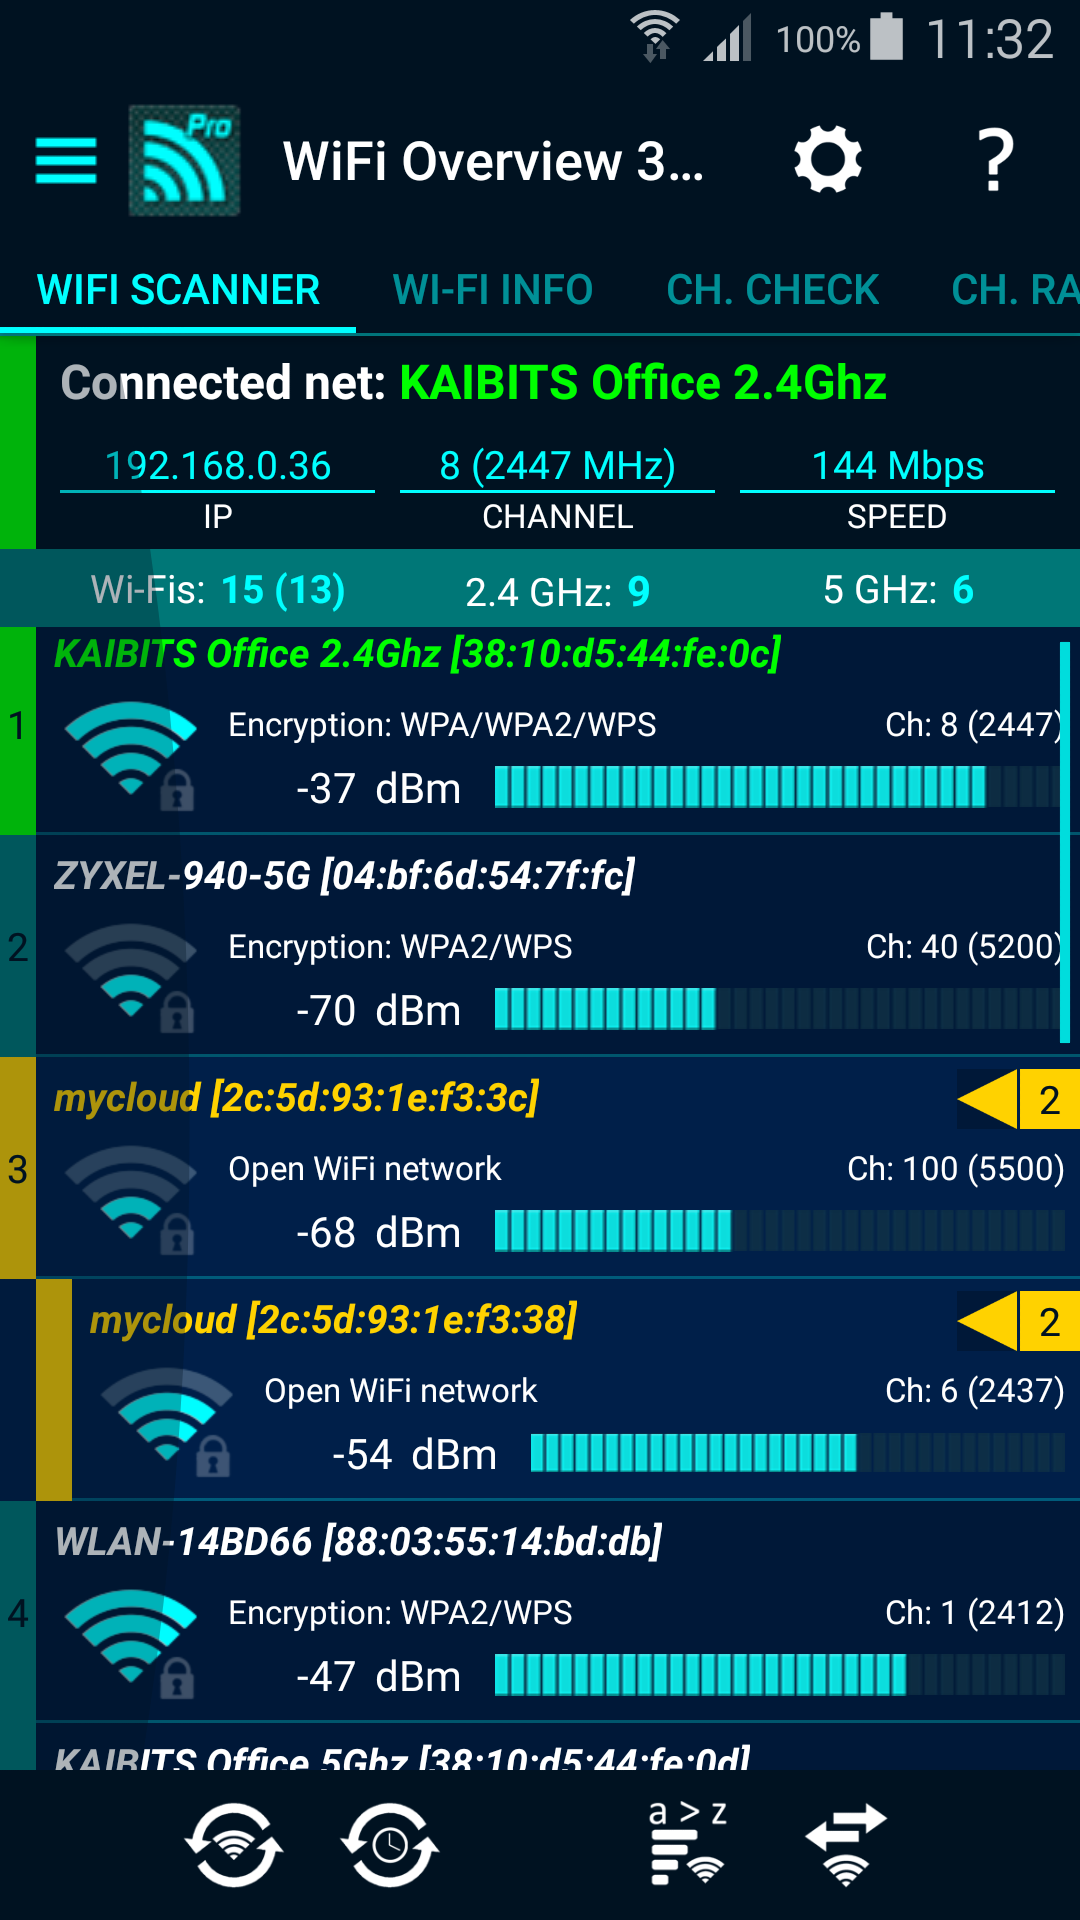 WiFi Overview 360 Pro v4.56.16 [Paid] 1